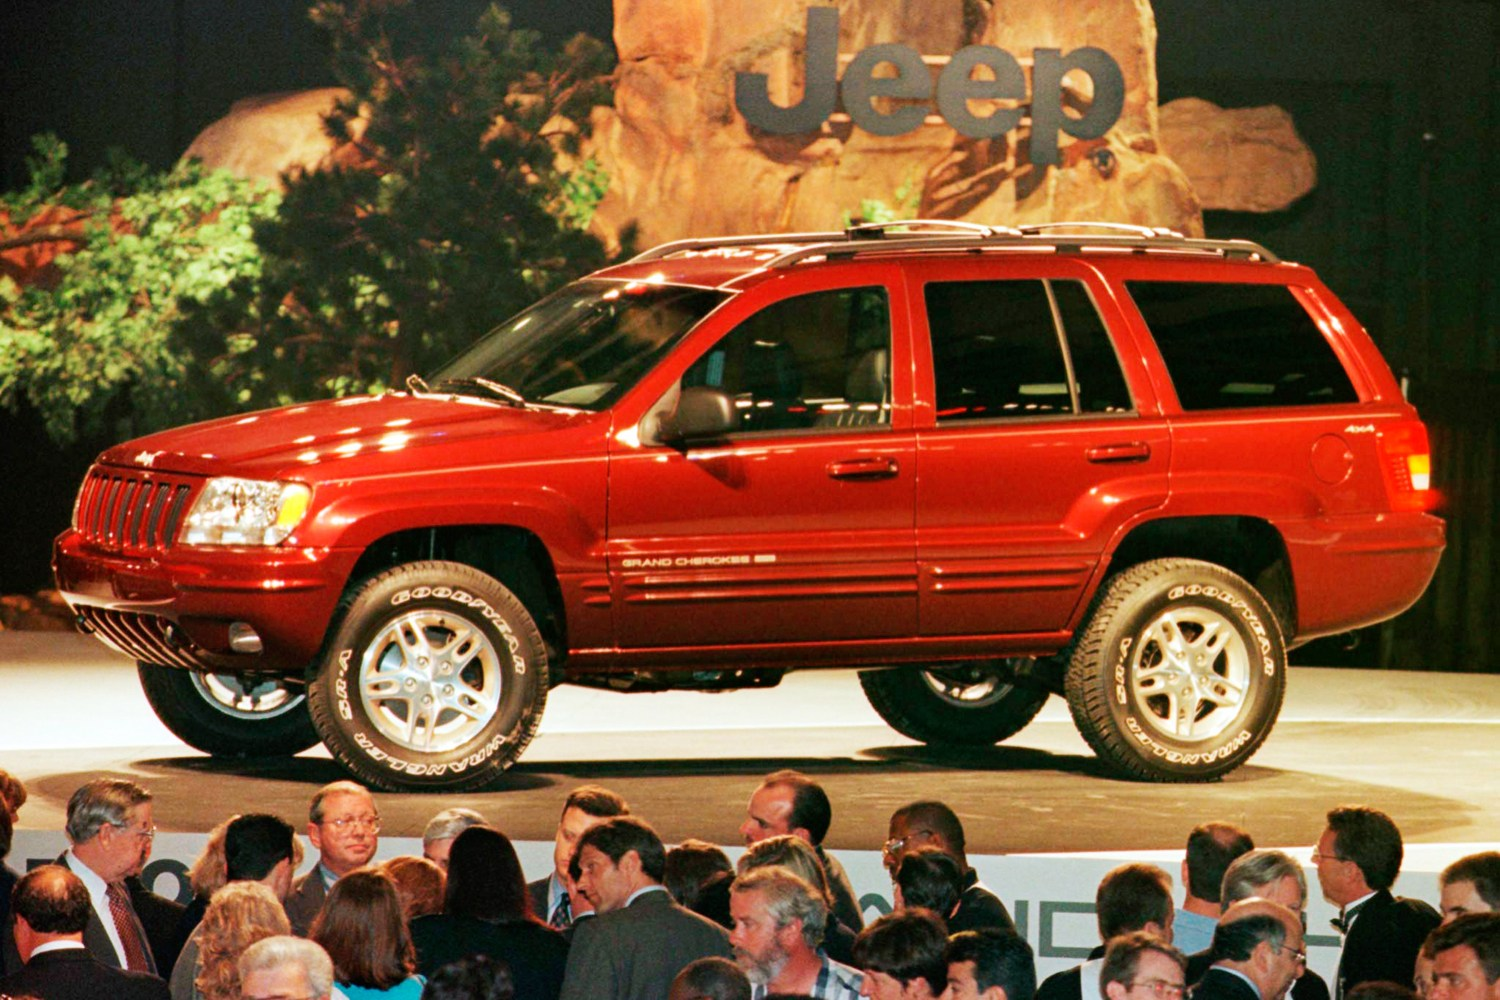 Amazing Chrysler Introduced The All New 1999 Jeep Grand Cherokee In Detroitu0027s Cobo  Center In Detroit